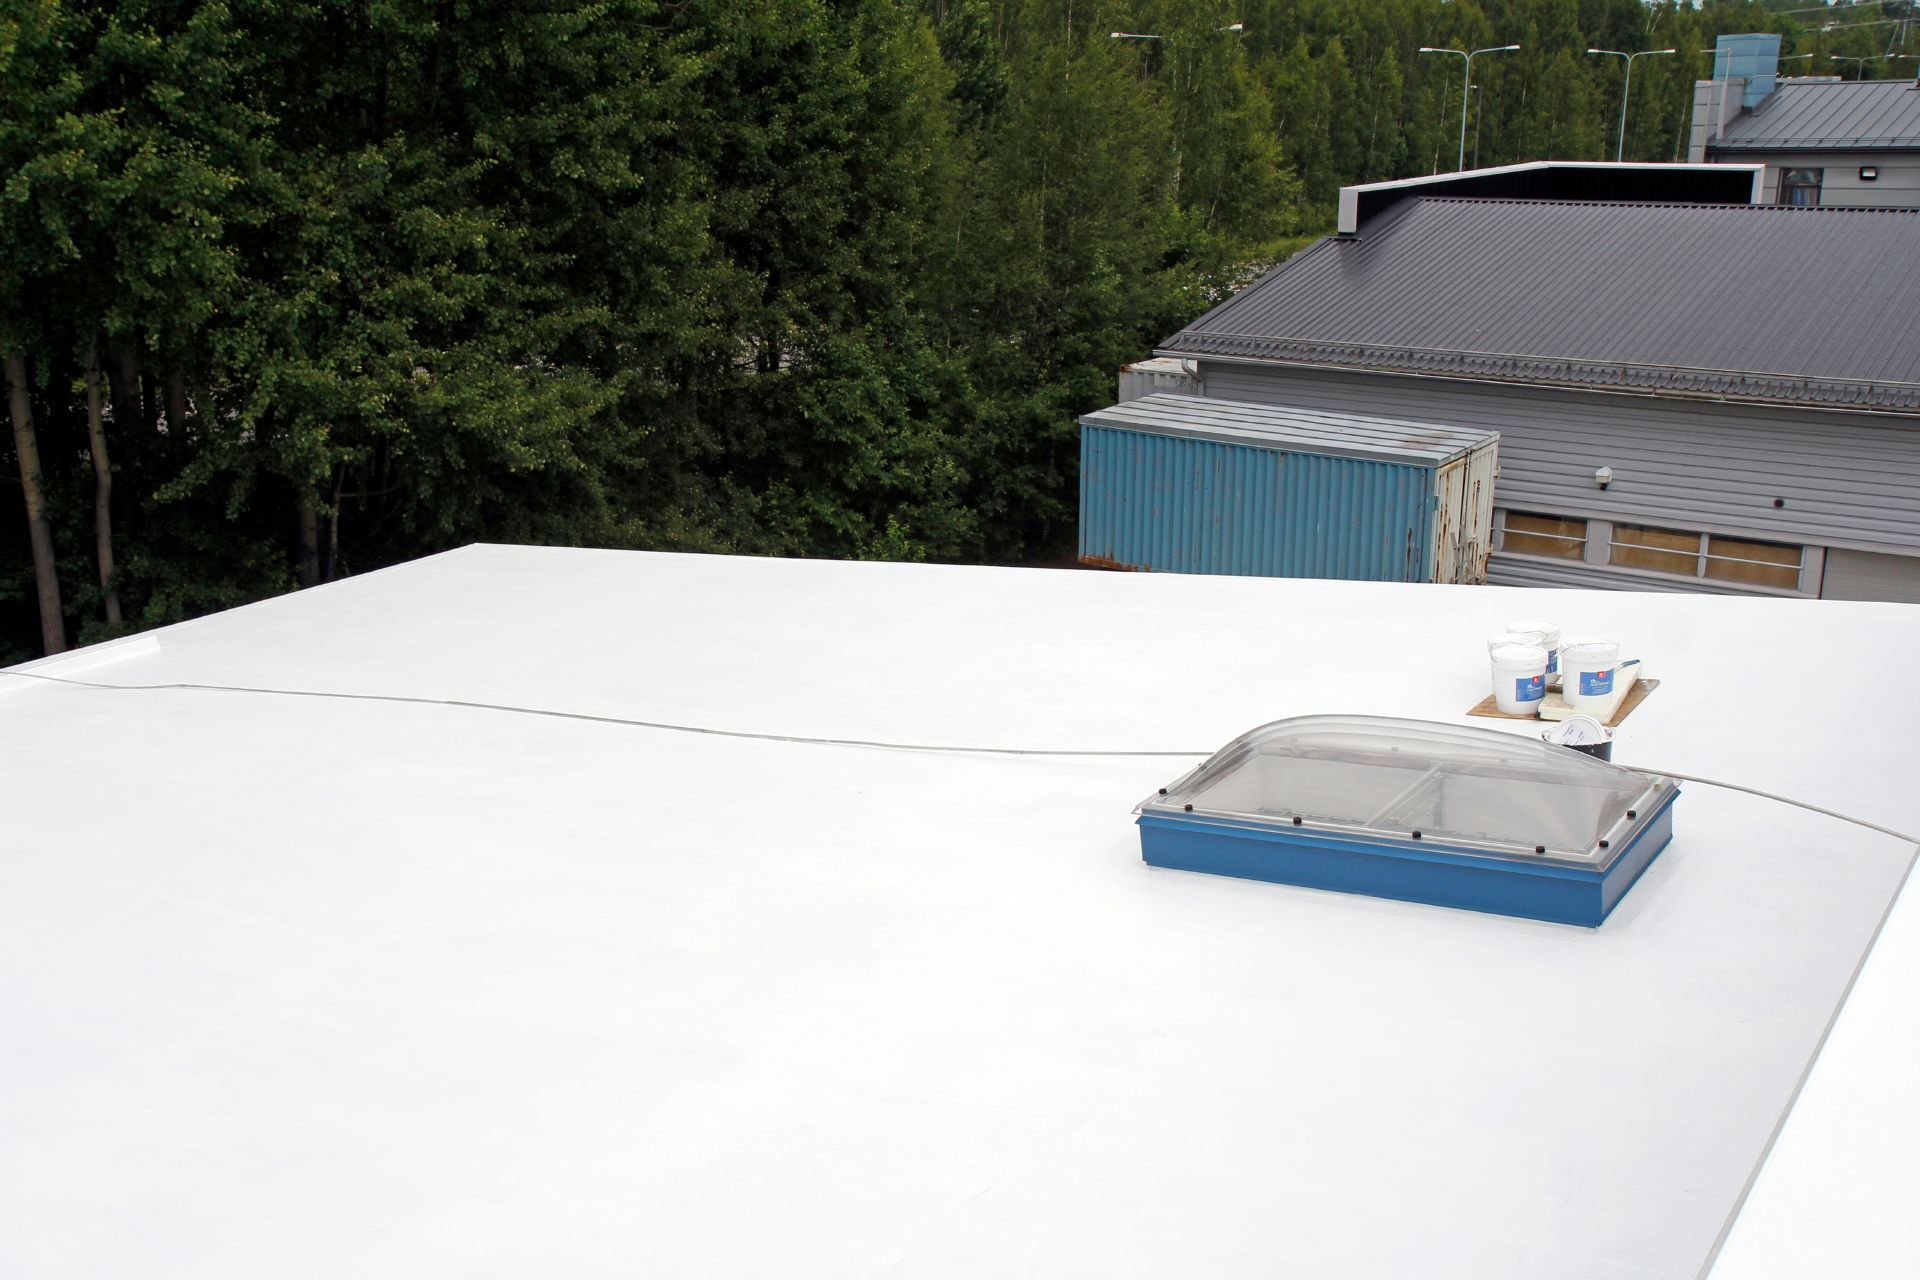 Lower temperature on the roof surface